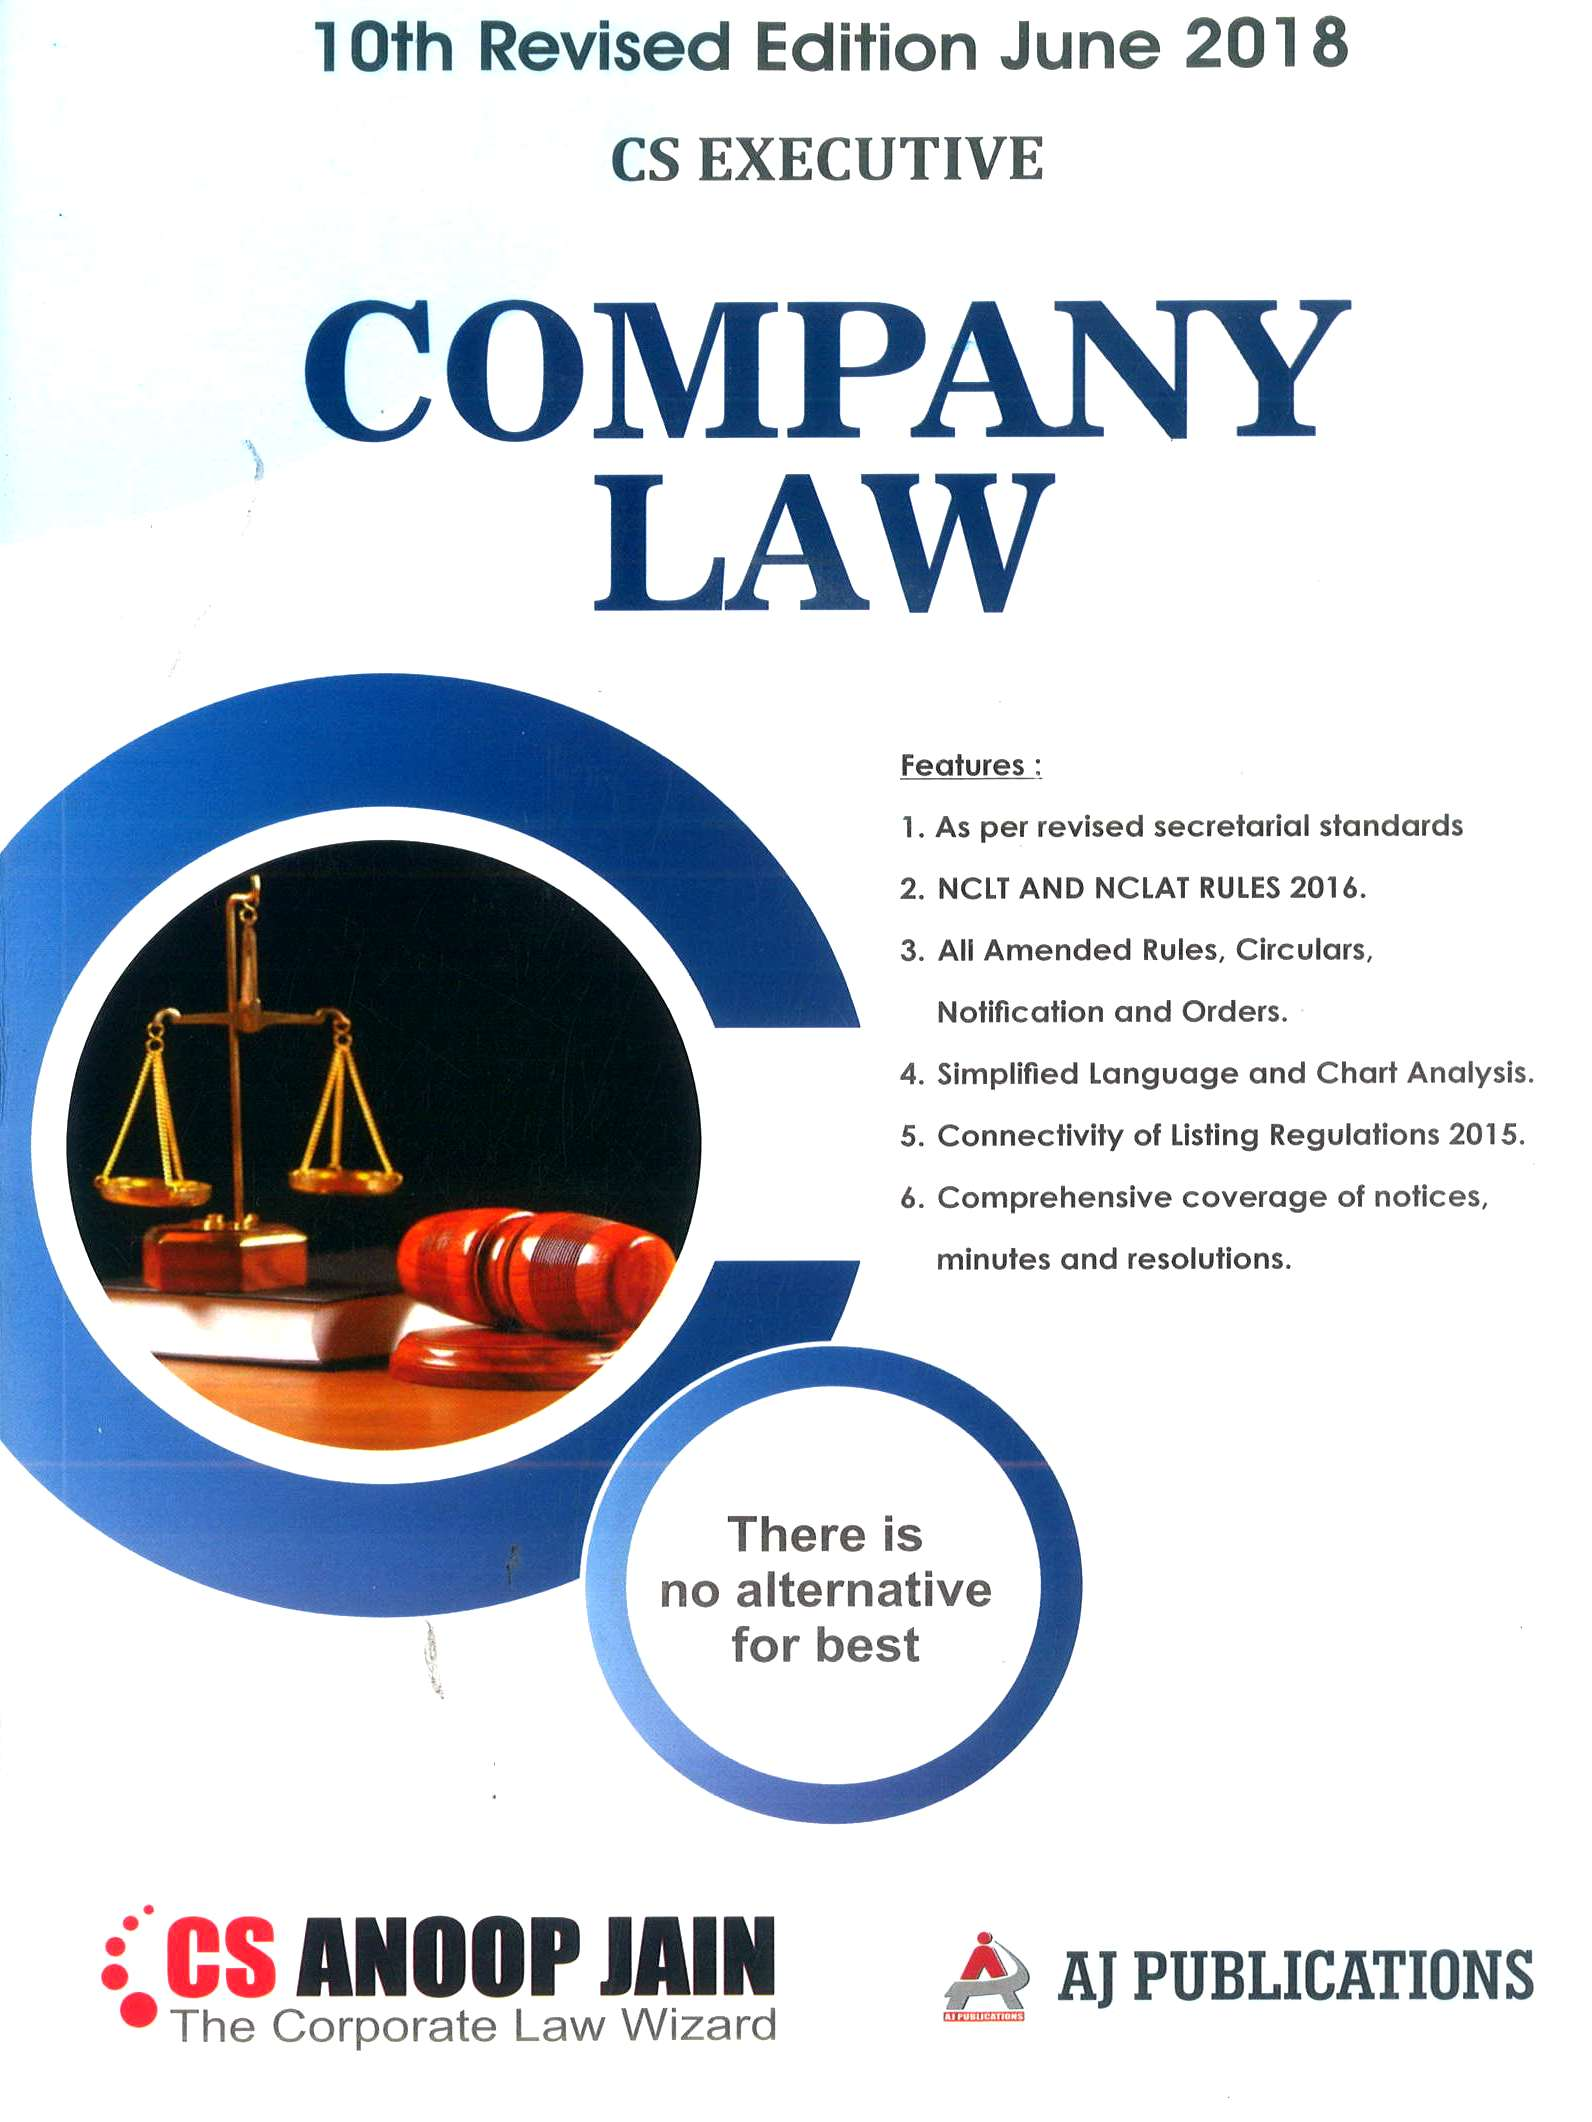 AJ Publications CS Executive Company Law by CS Anoop Jain Applicable for June 2018 Exam (AJ Publishing) Edition 10th, 2018